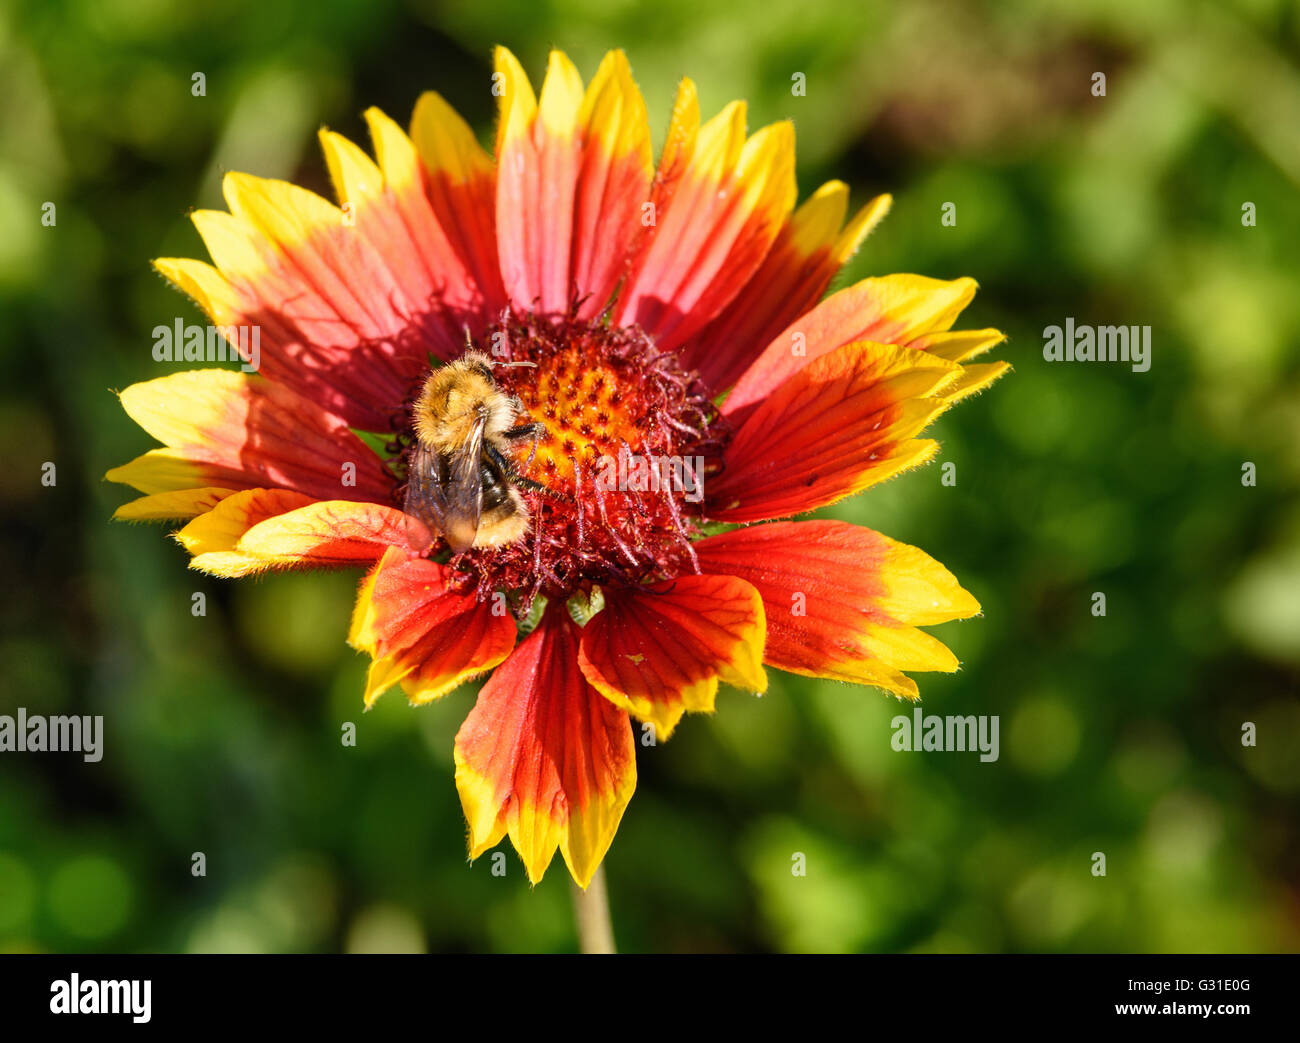 Gaillardia flower with bumble bee in the garden on green background. Close-up Stock Photo